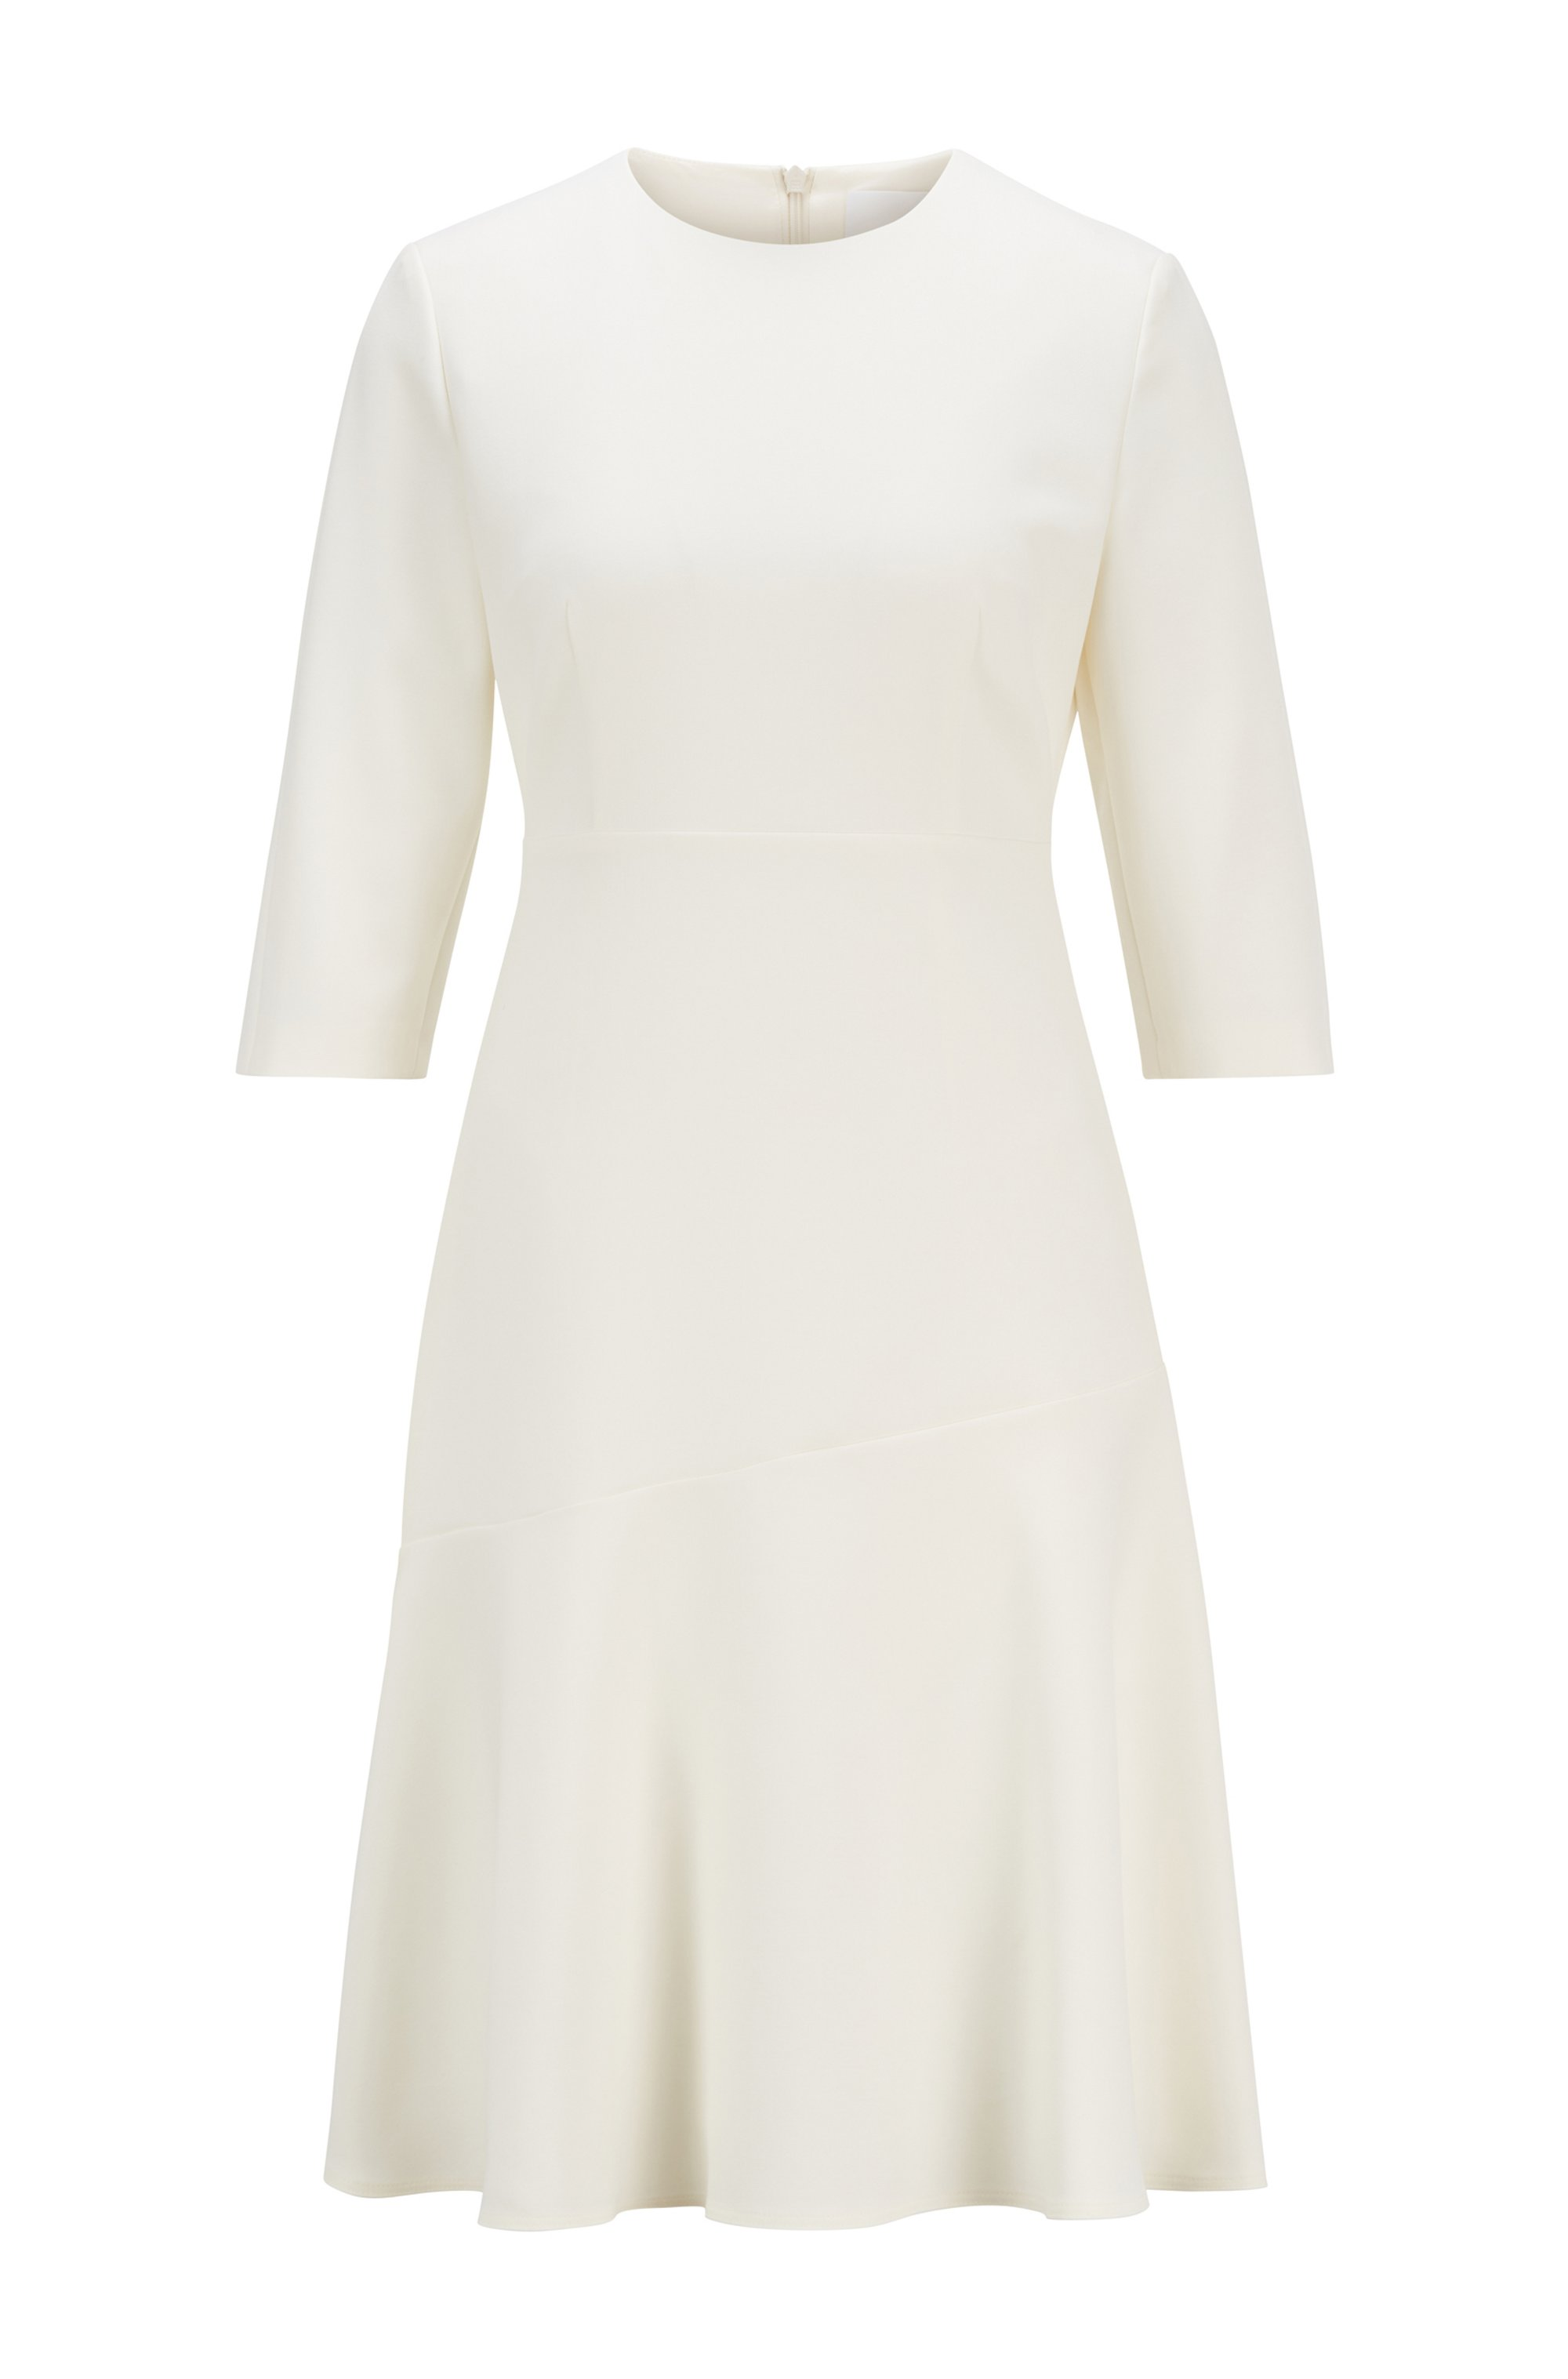 Scoop-neck A-line dress in Portuguese stretch fabric, White